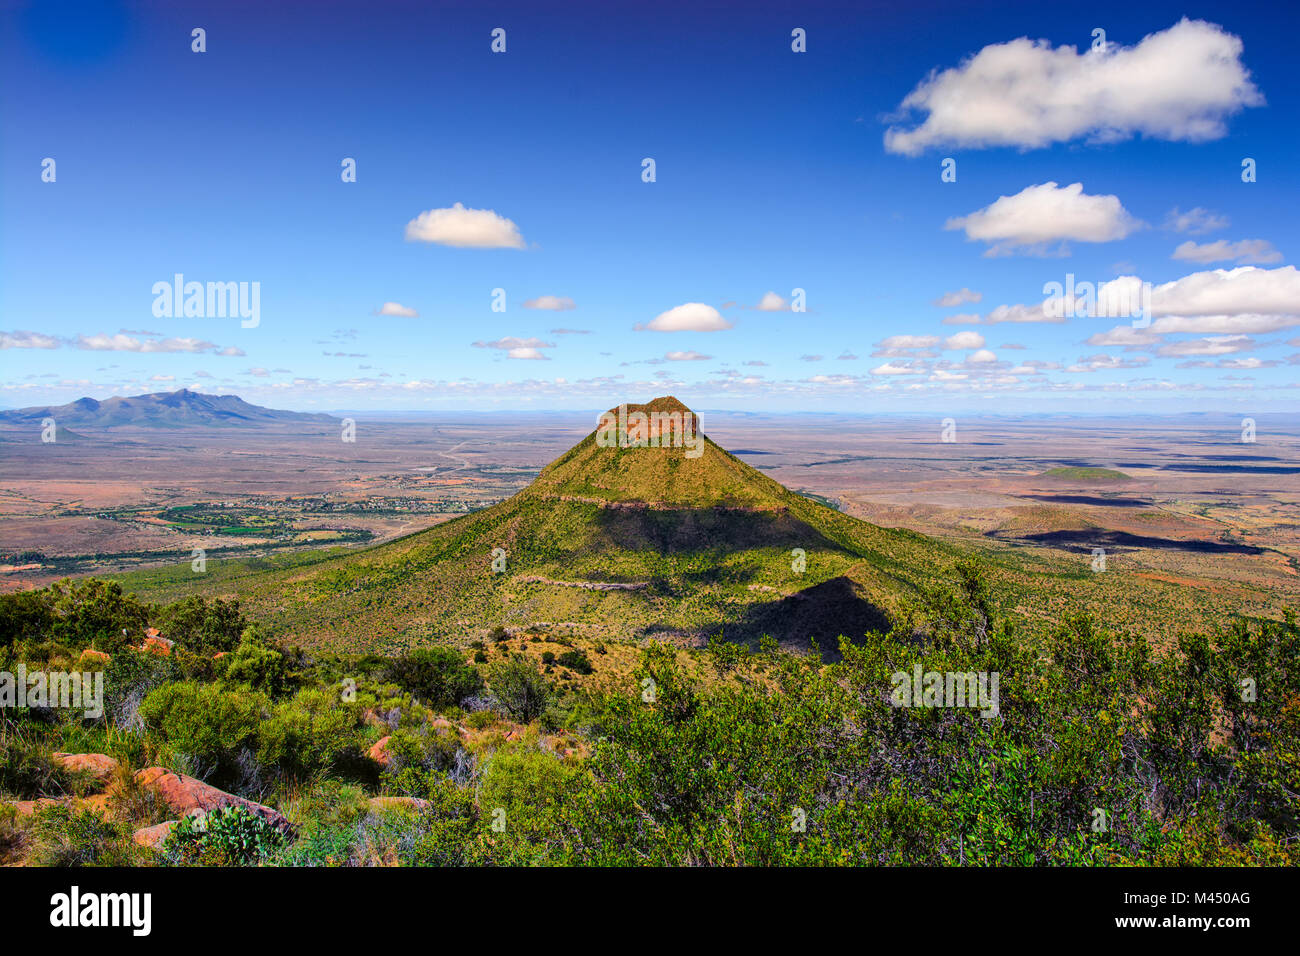 Colorful panorama view of a bizarre landmark mountain in the Valley of Desolation, Graaff Reinet,Karoo,Camdeboo,South - Stock Image